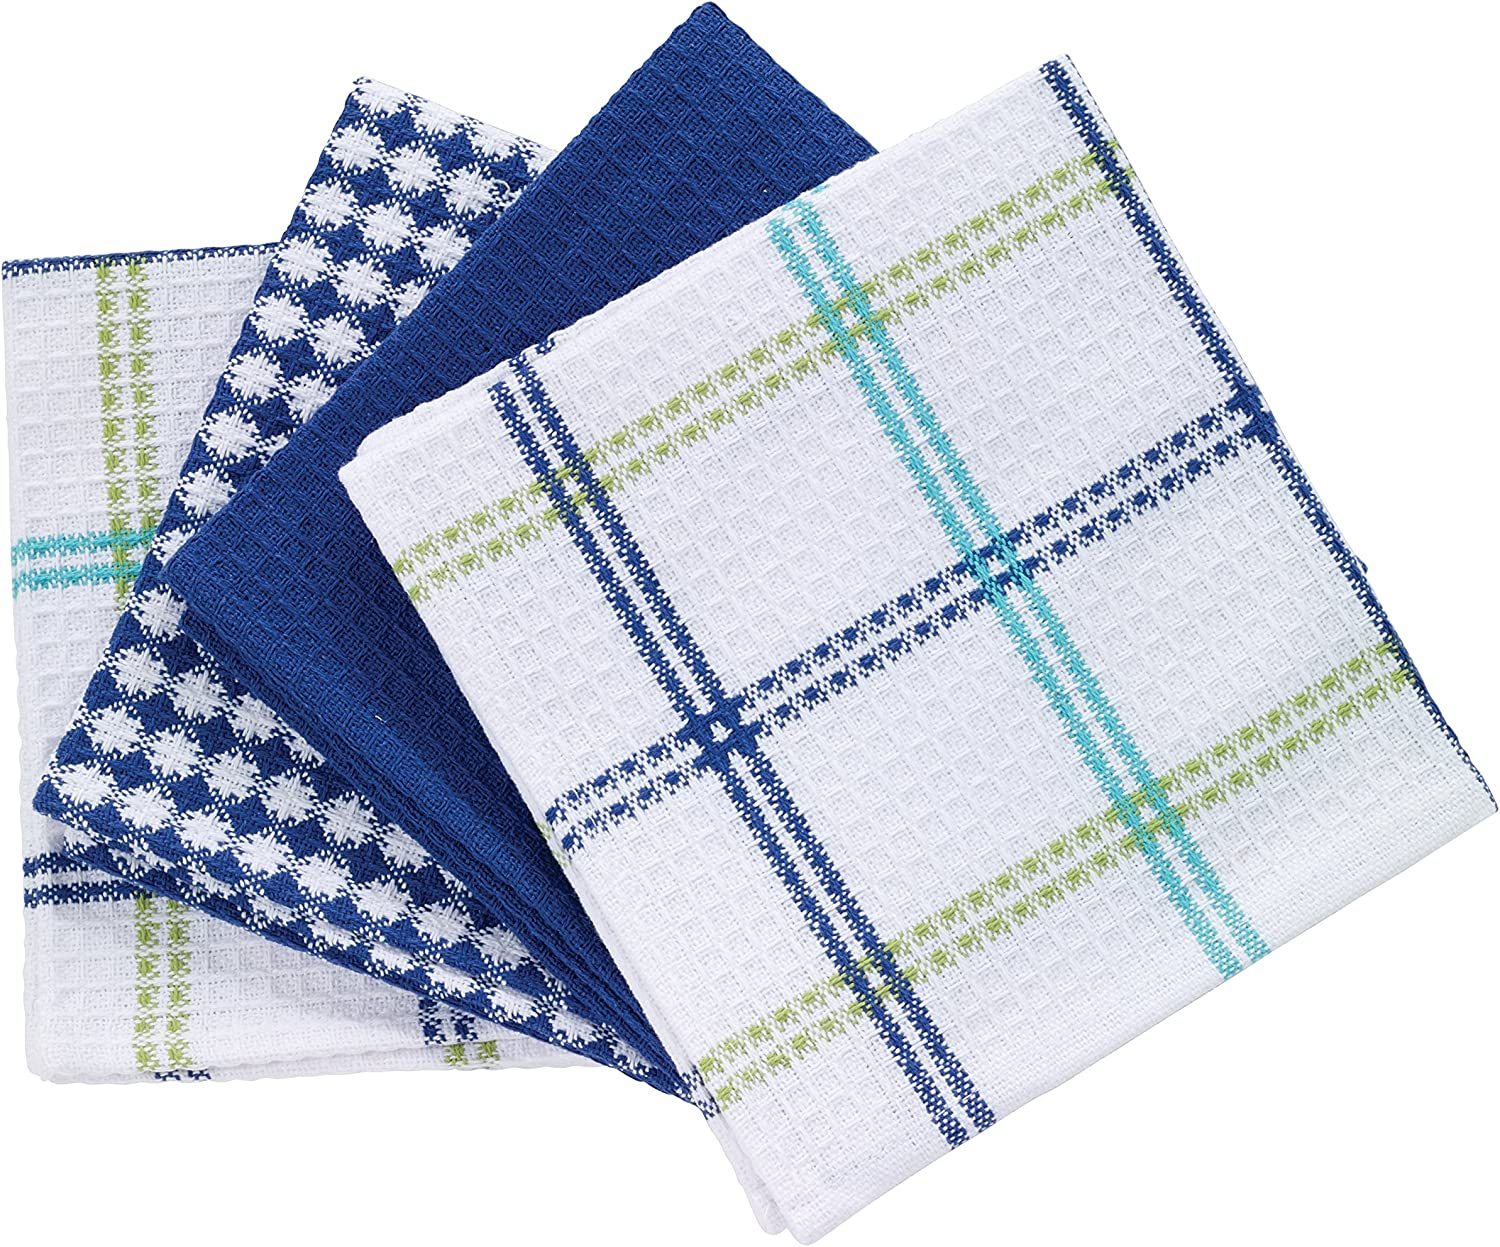 T-fal Textiles 24397 4-Pack Cotton Flat Waffle Dish Cloth, Cool, 4 Pack